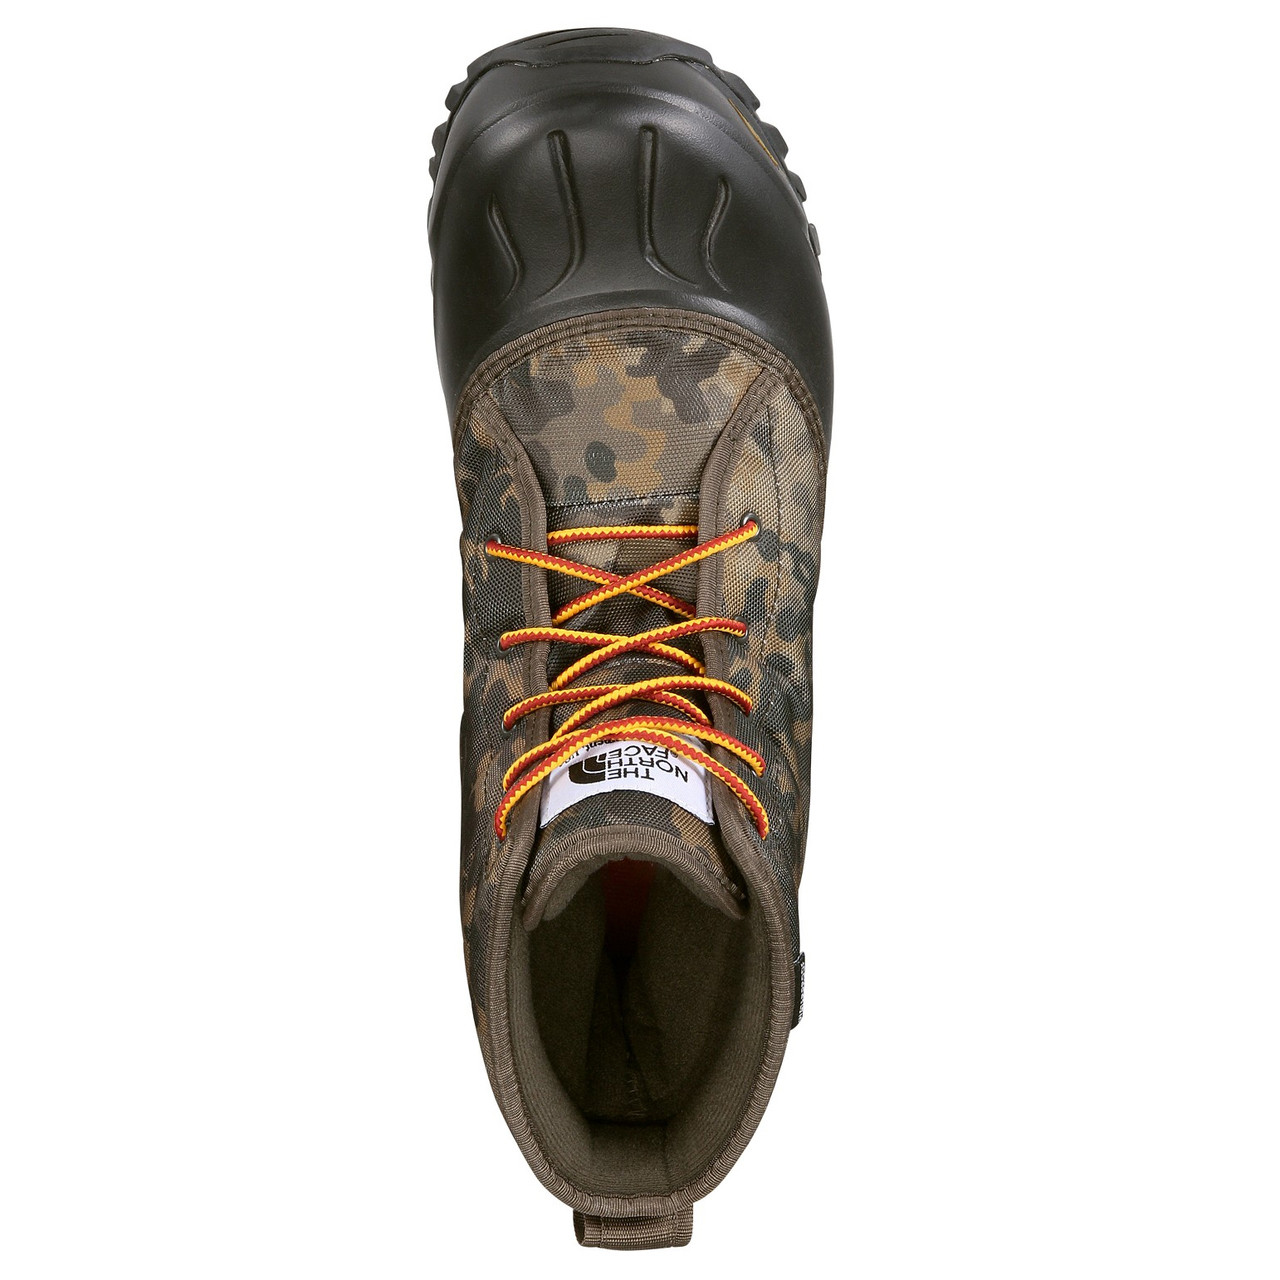 4470af6fbea The North Face Men's Tsumoru Waterproof Winter Boots #NF0A3MKS8HN